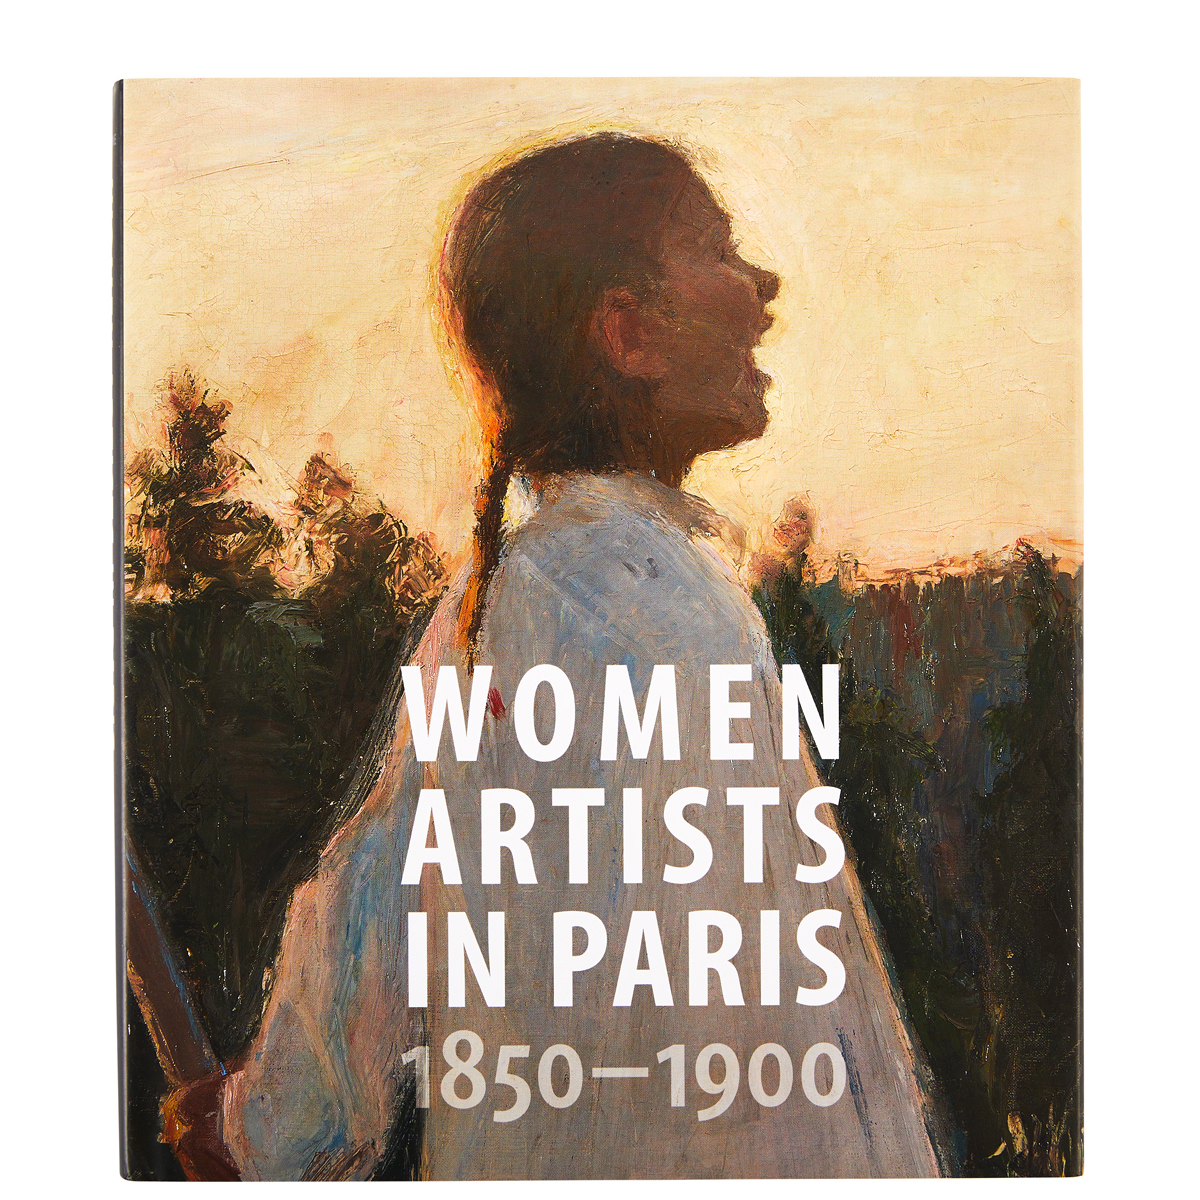 Women Artists in Paris: 1850-1900